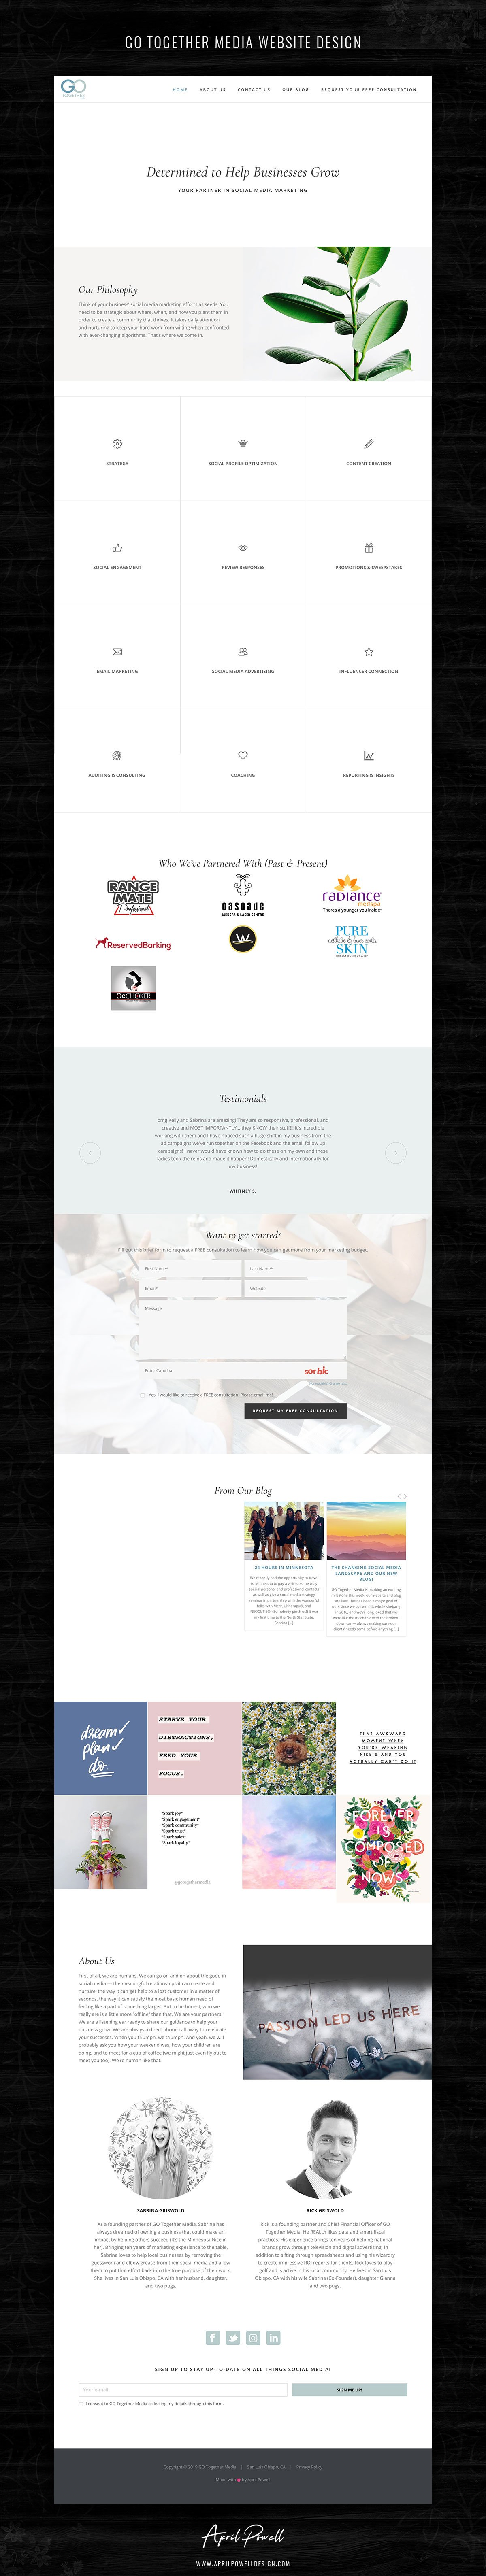 simple and strategic website design